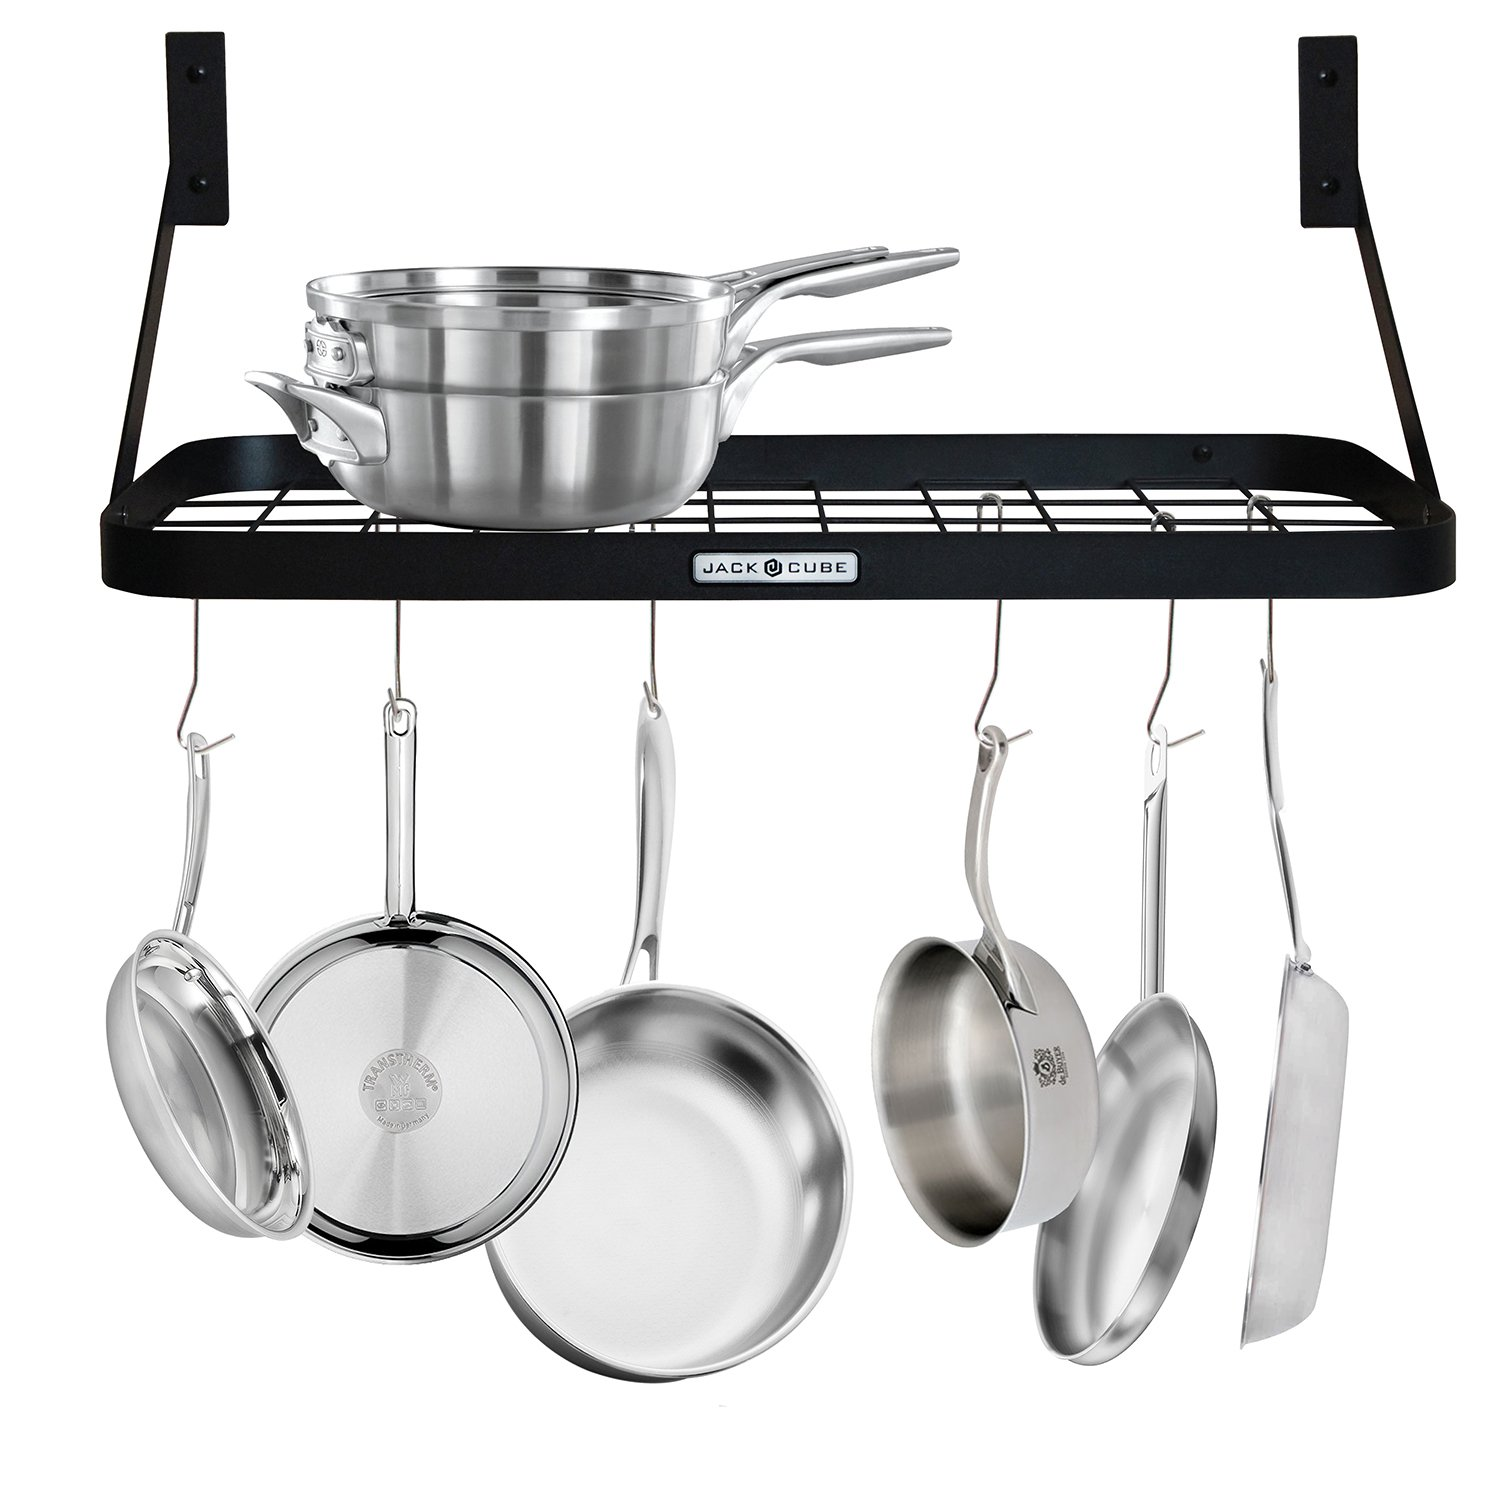 JackCubeDesign Wall Mount Grid Pot Pan Rack Hanger Organizer Kitchen Storage Shelf Tray Holder with Utility 8 Hooks(24.4 x 11.8 x 1.2 inches) – :MK397A